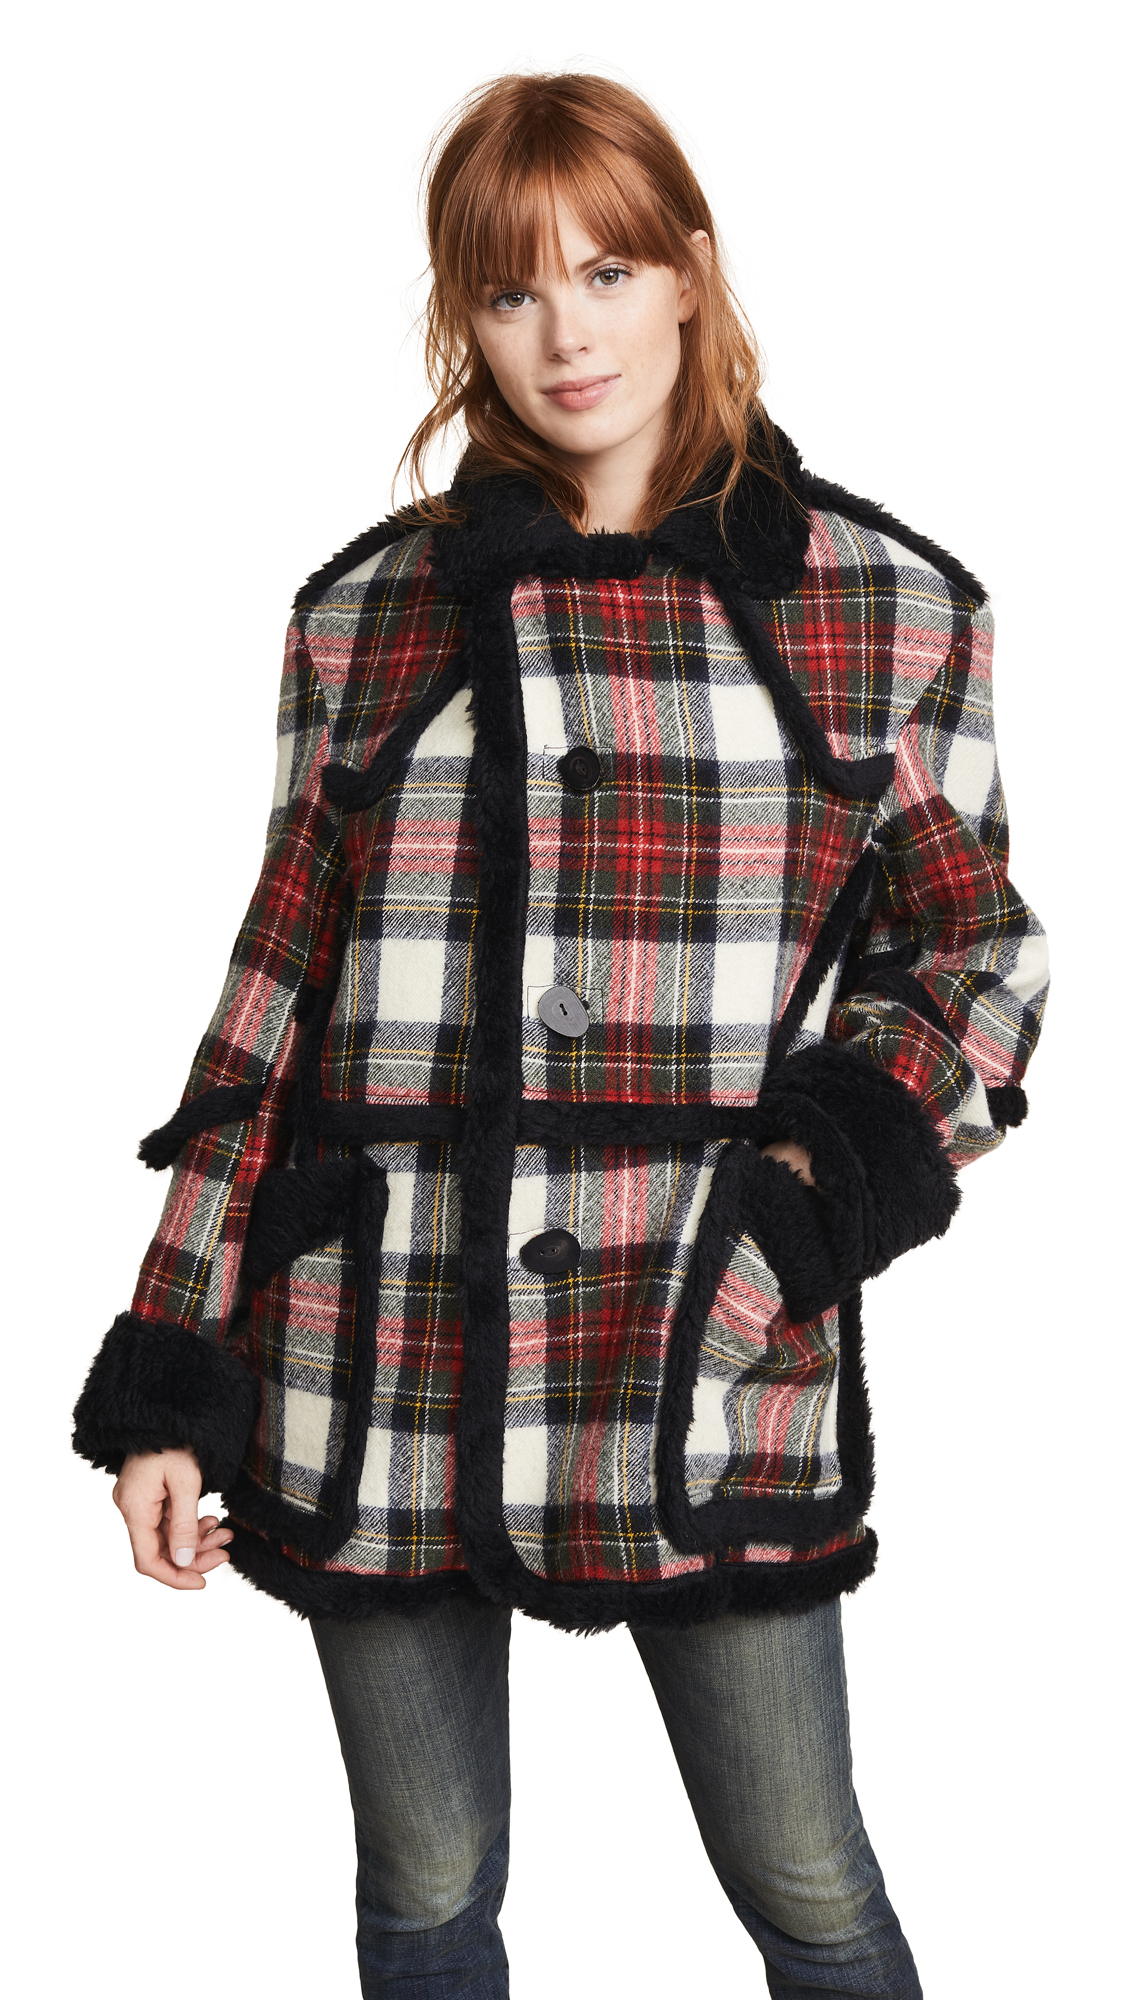 R13 Plaid Coat with Sherpa Trim In Red/Cream Plaid